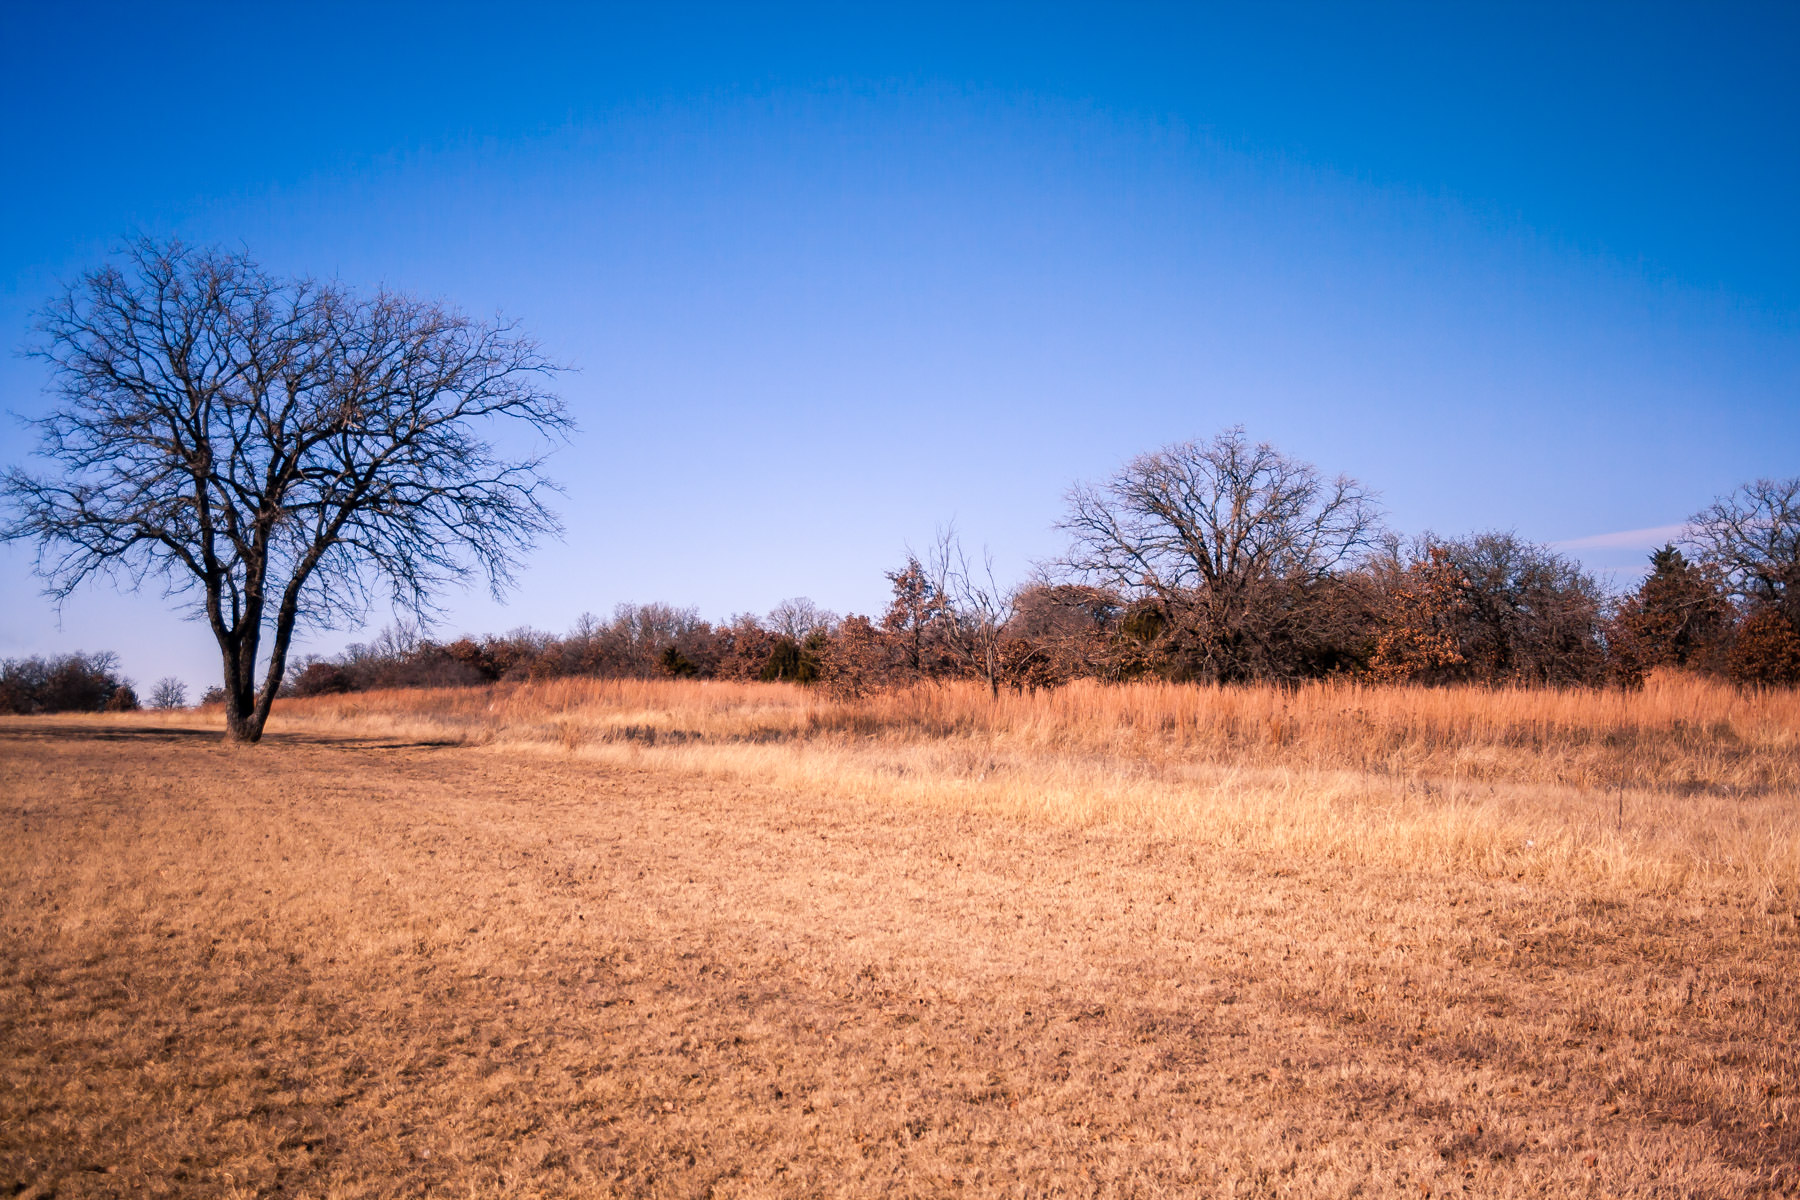 Trees stripped of their leaves by the winter's cold somewhere northwest of Fort Worth, Texas.